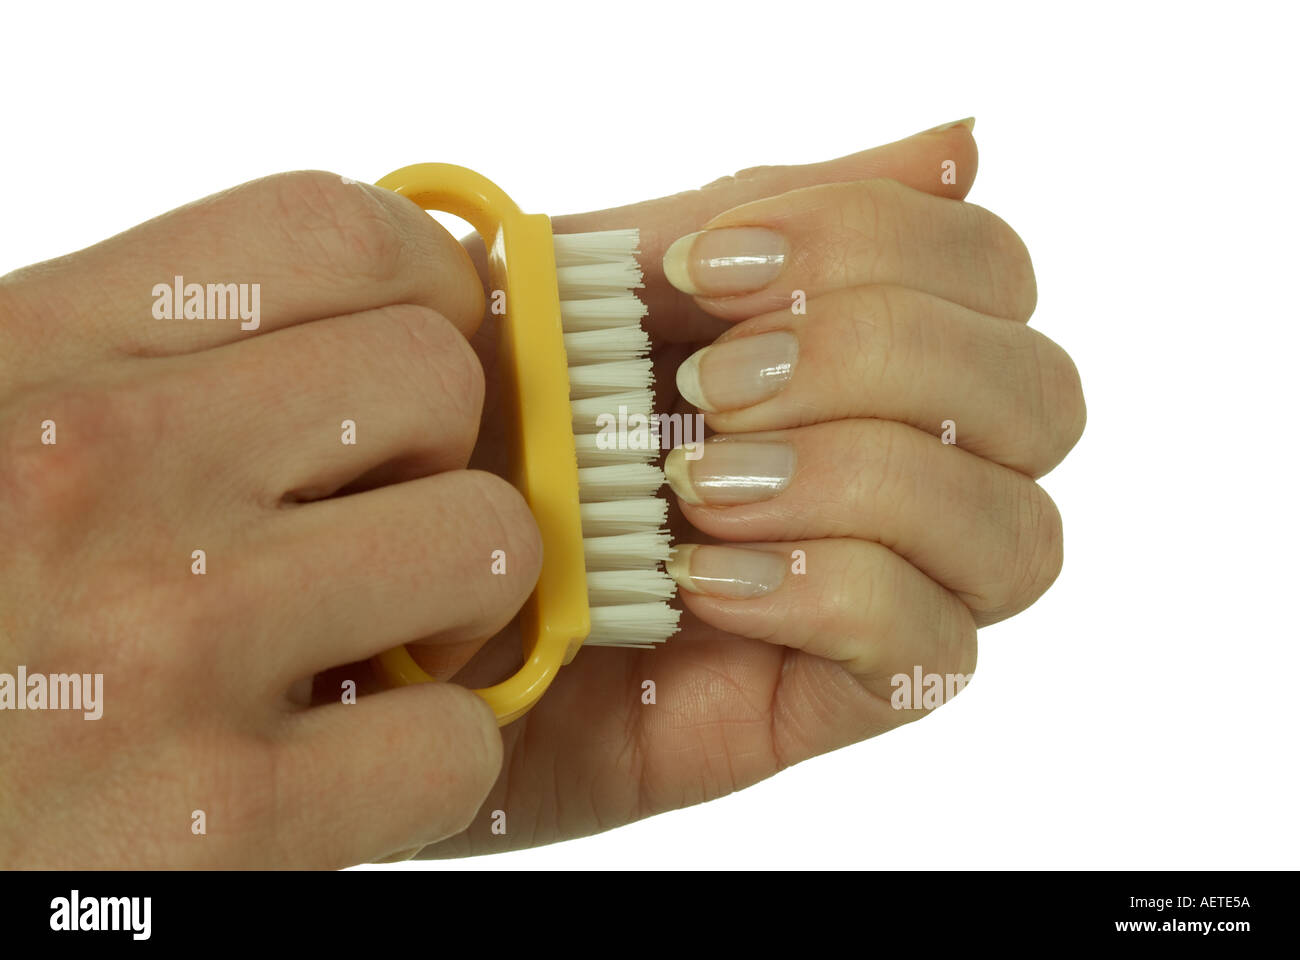 hands with nail brush cleaning nails Stock Photo: 2559577 - Alamy